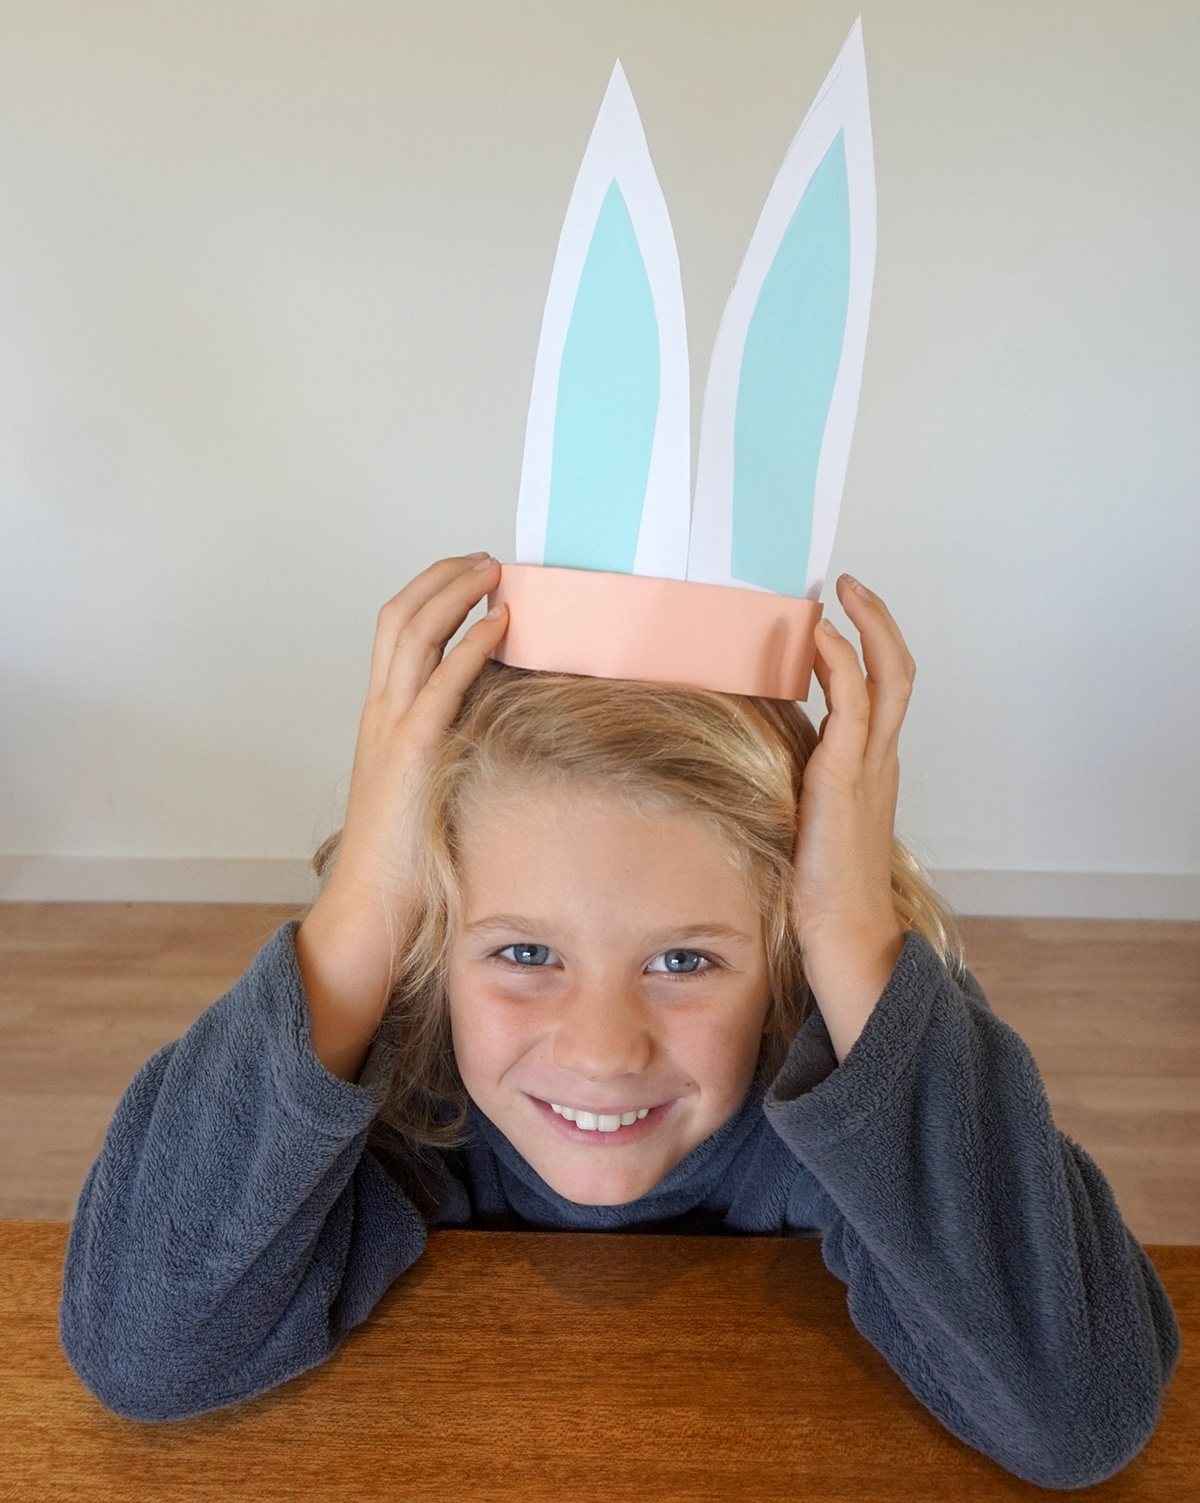 Boy wearing finished set of bunny ears showing alternate decorations.